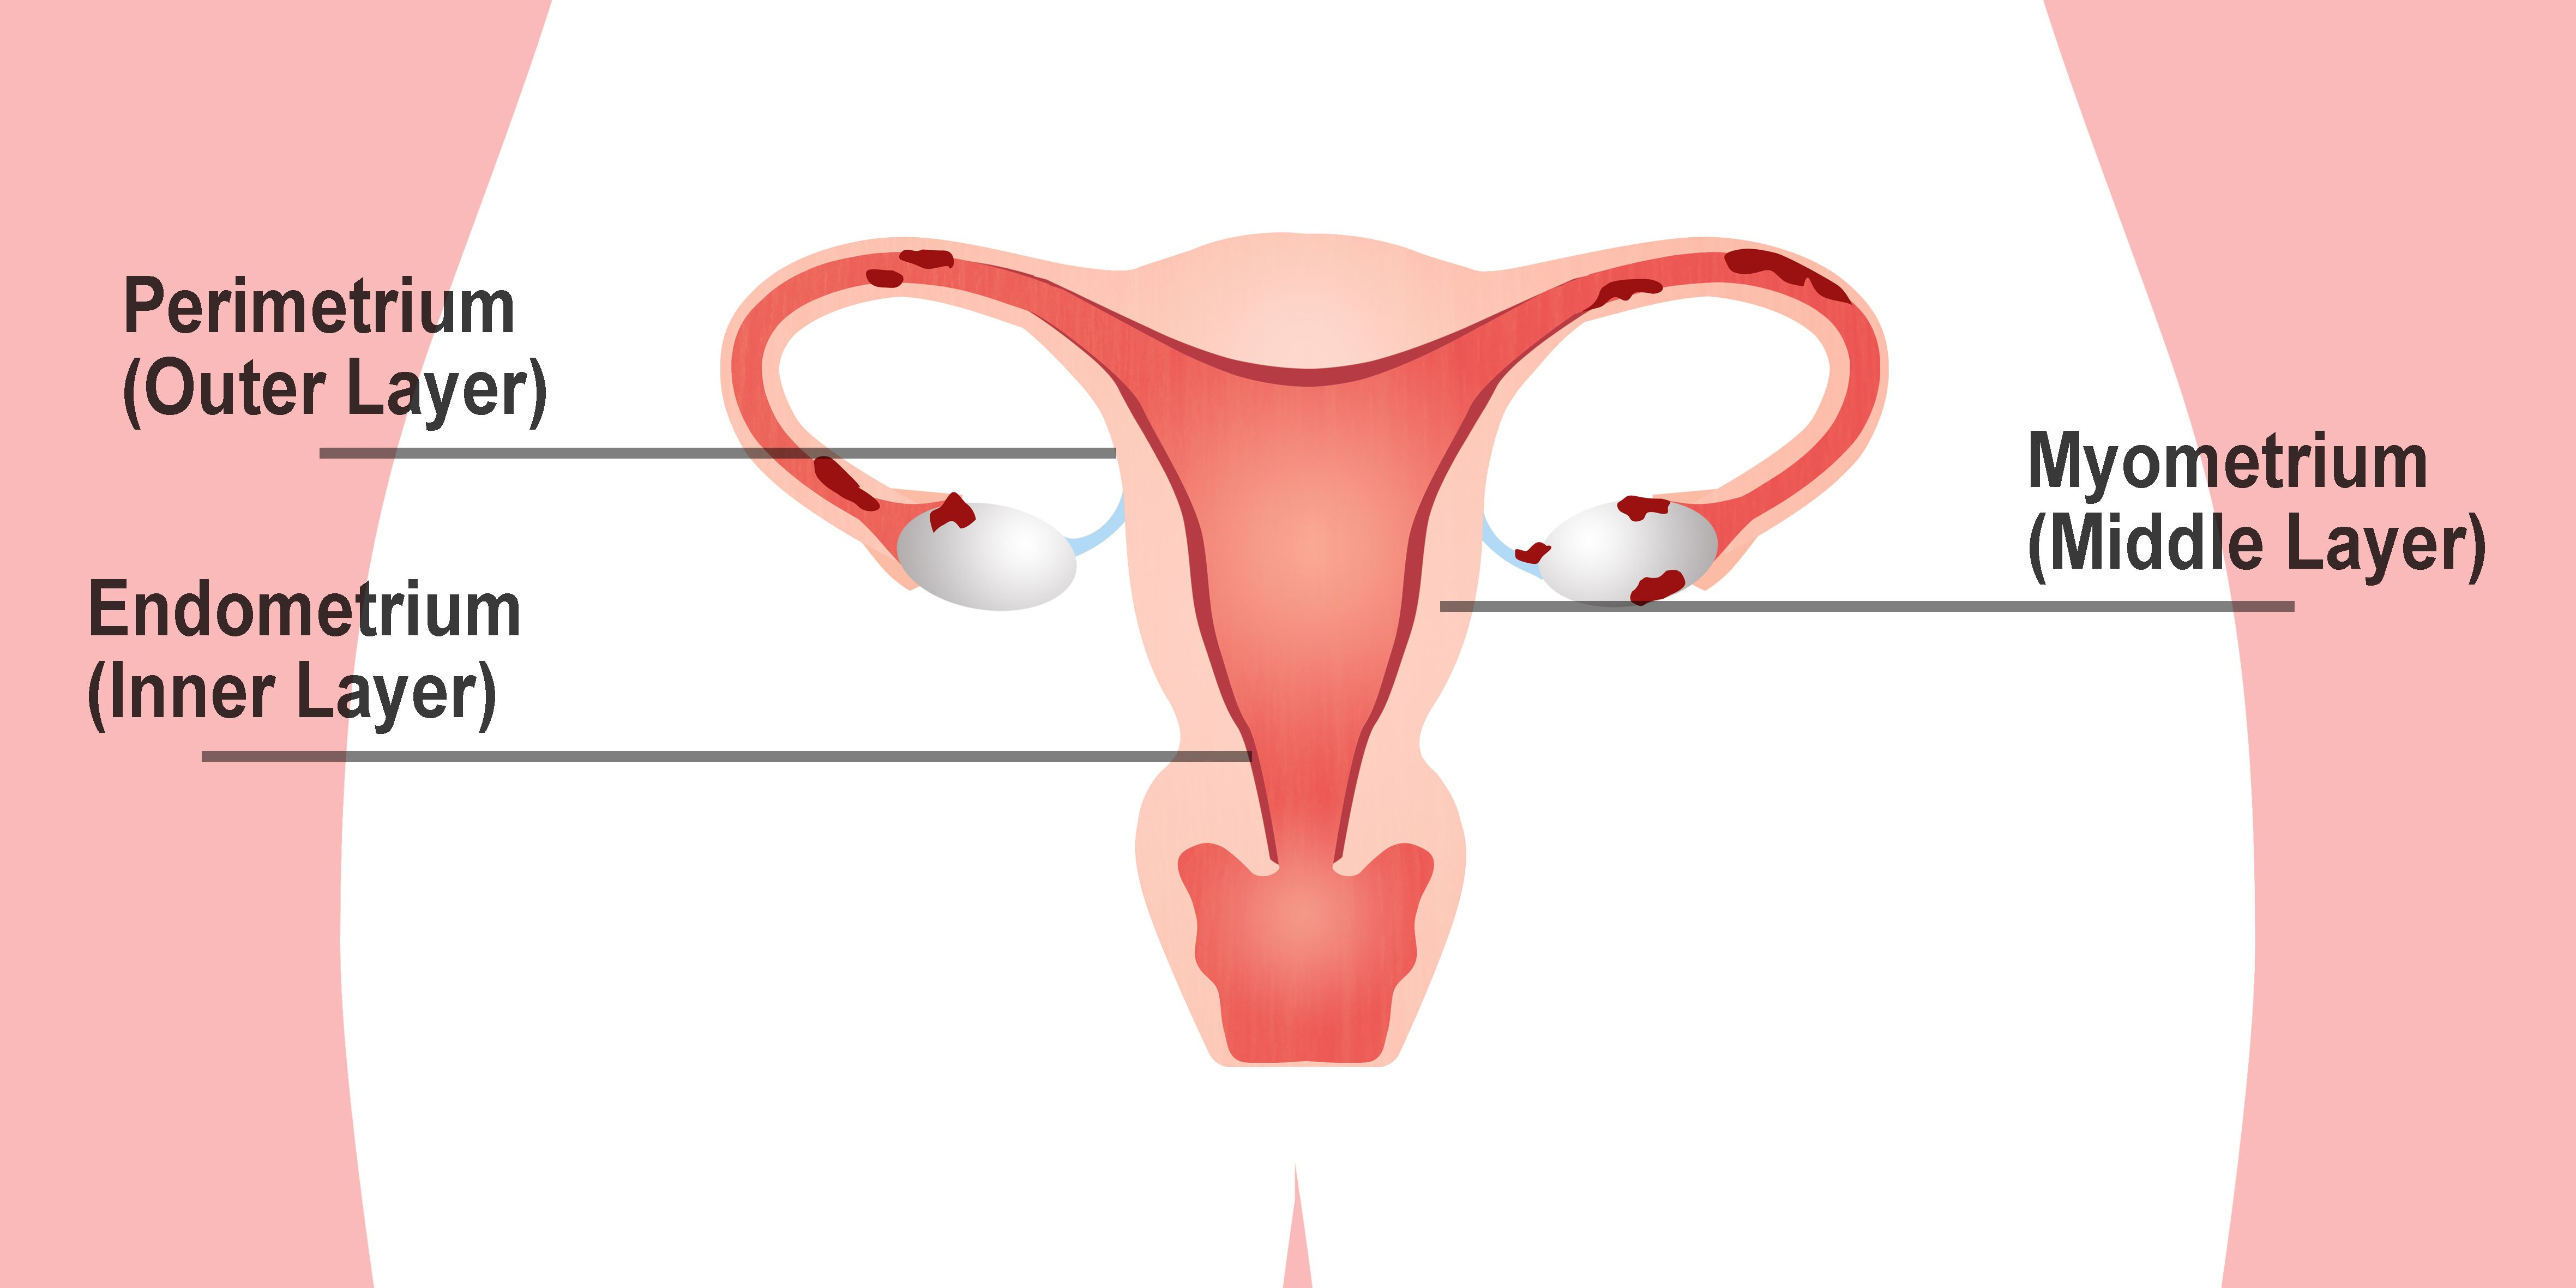 hight resolution of this image shows the three different layers of the uterine wall the perimetrium is the outermost layer the myometrium is the middle layer that consists of